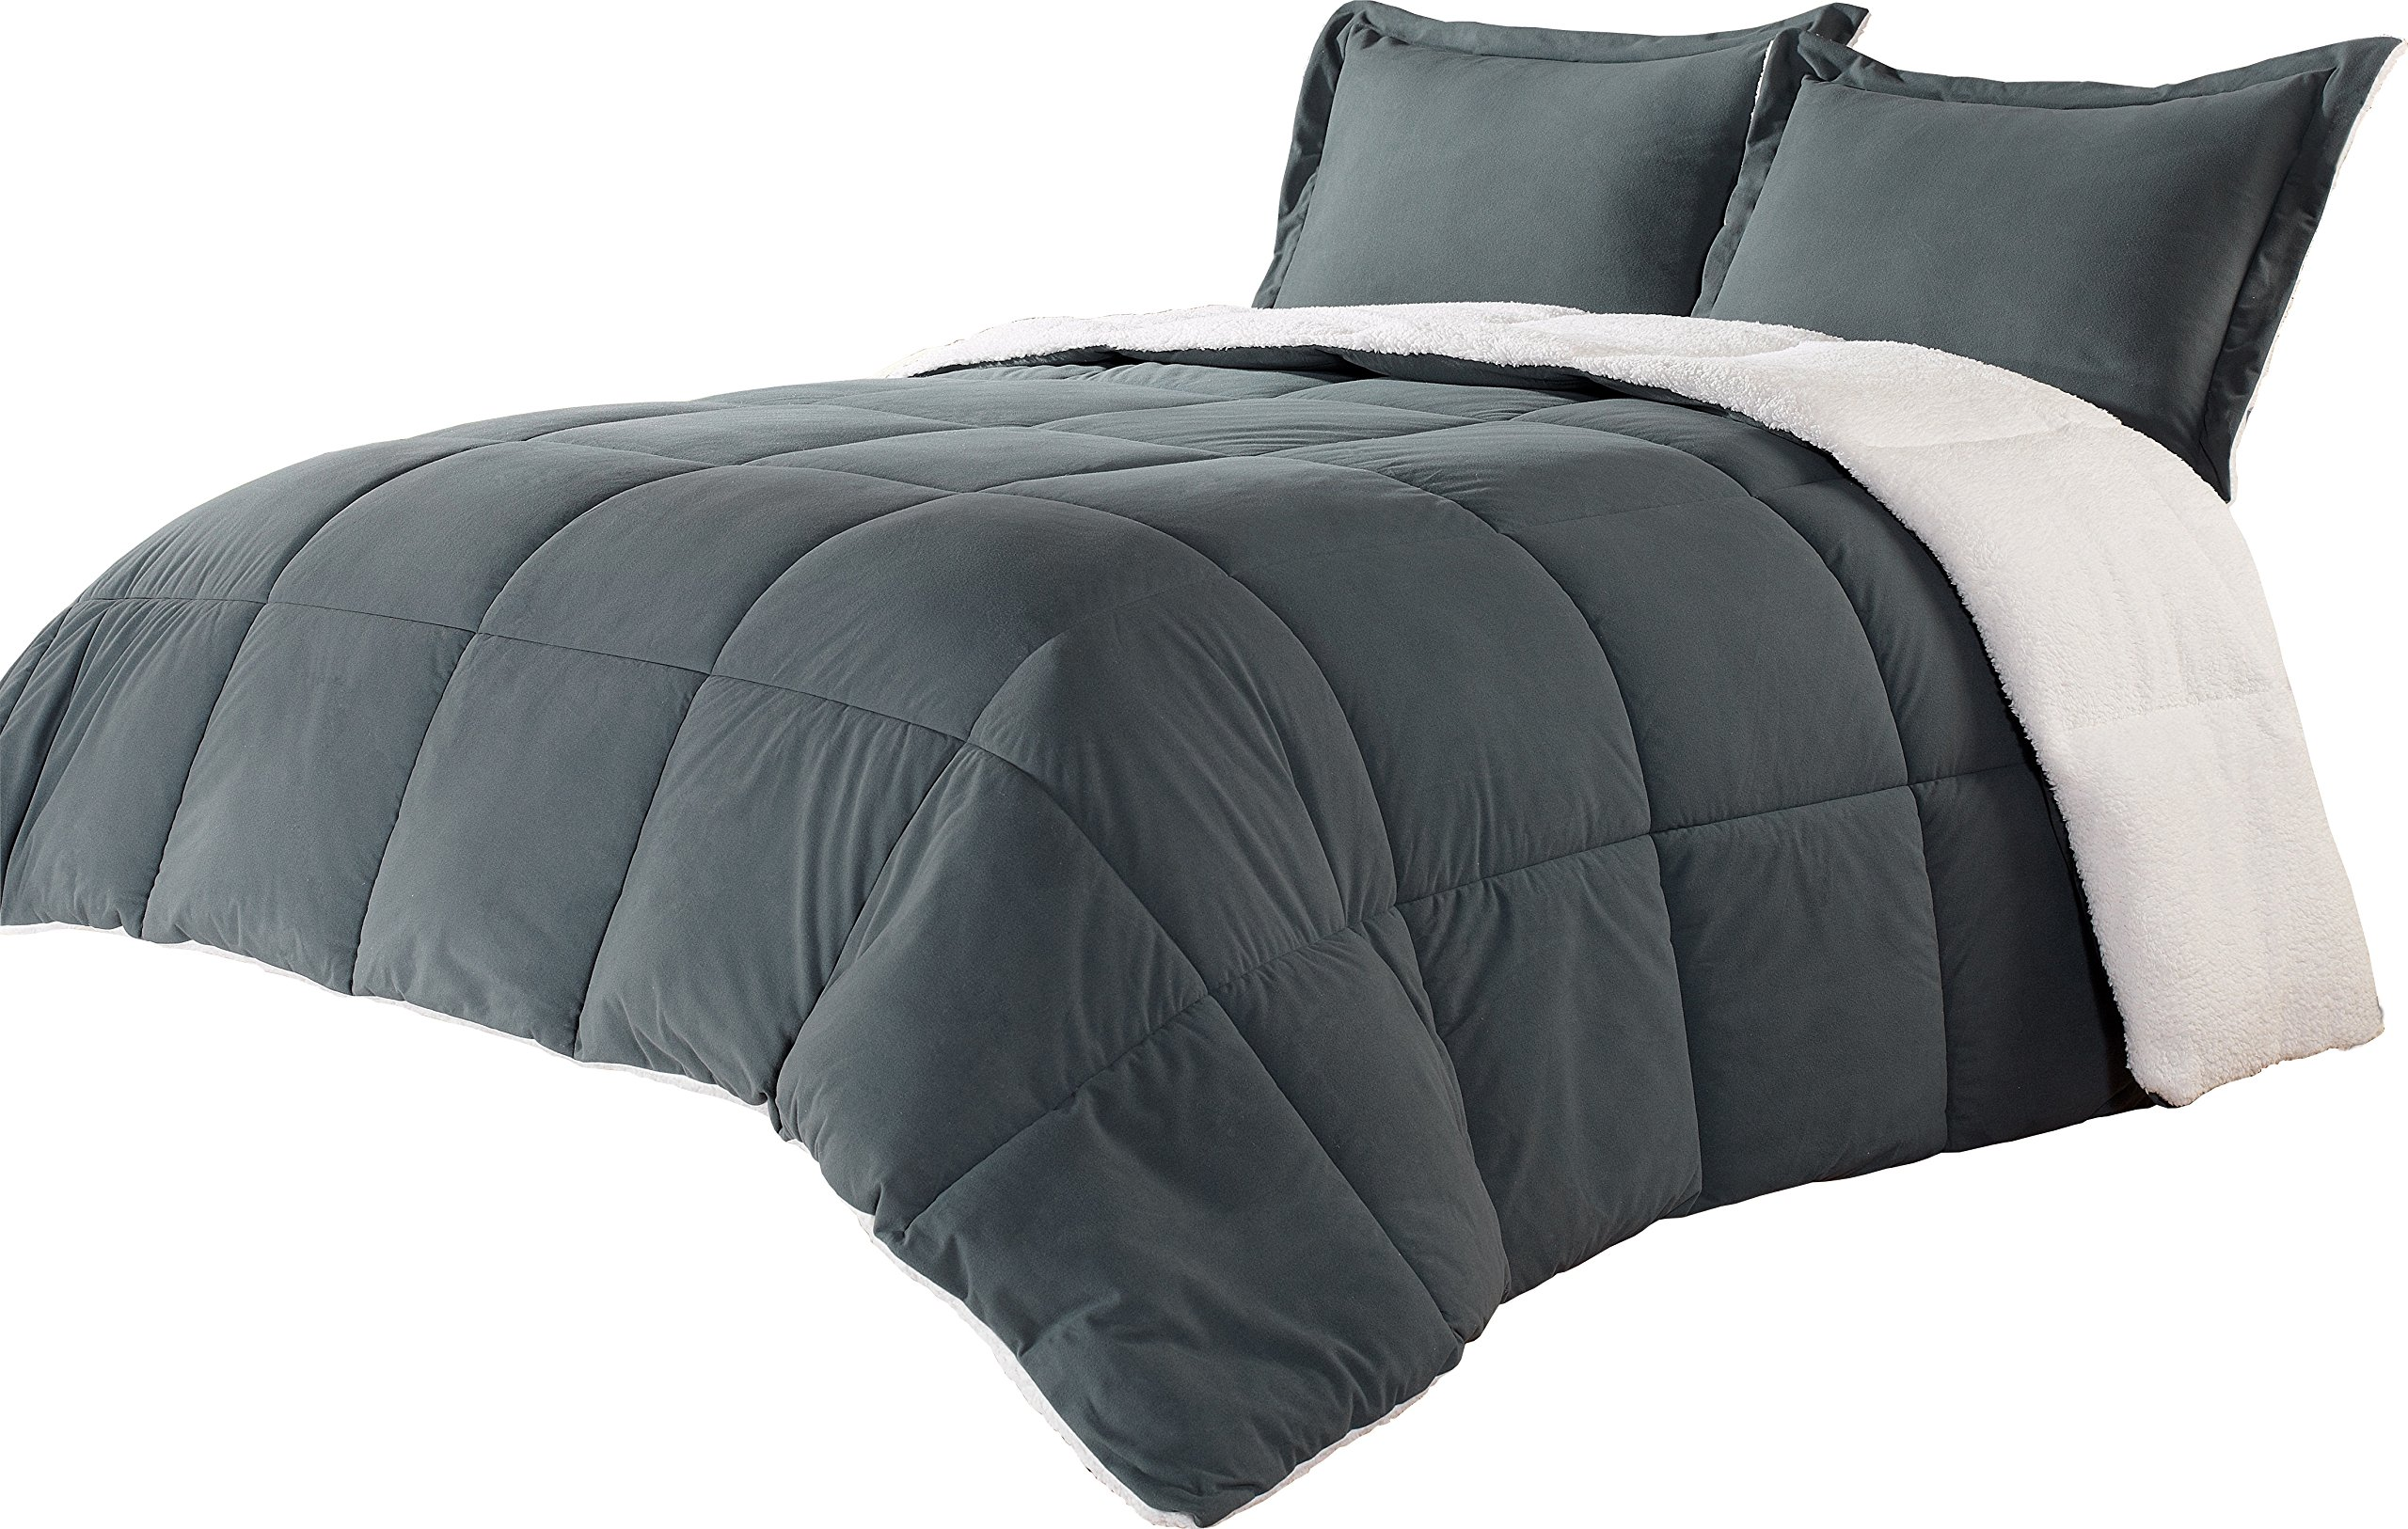 Borrego Twin Size 2pc Comforter Set Grey Sherpa Blanket Super soft down alternative Bed Cover Set